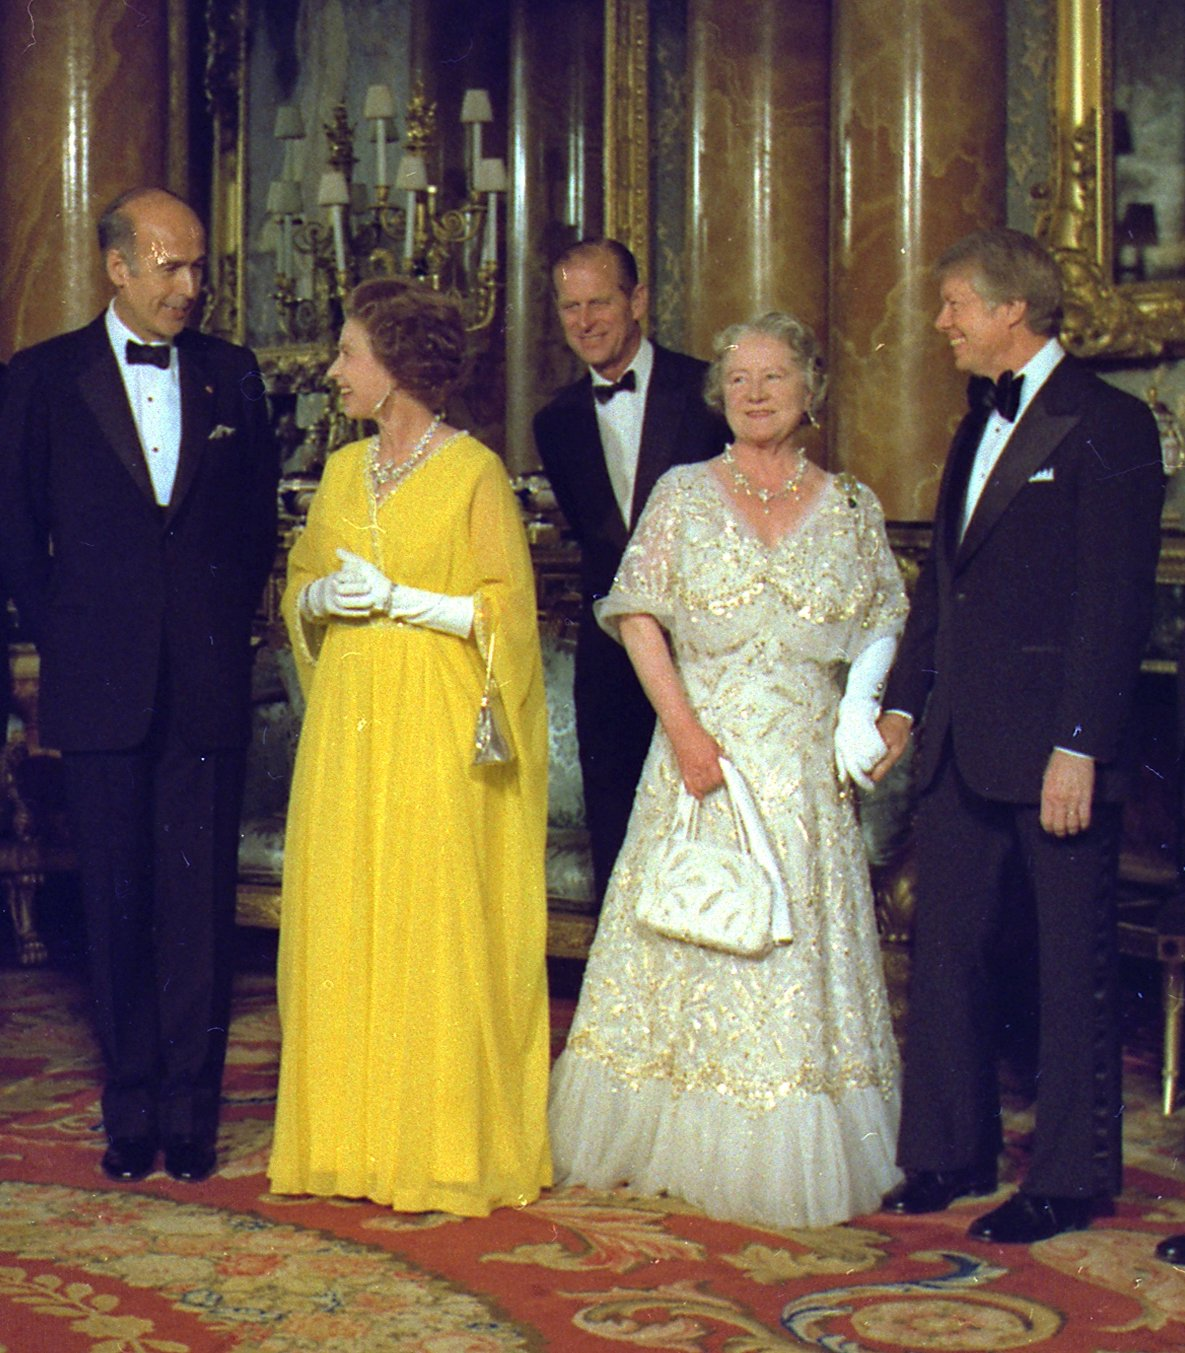 Valéry Giscard d'Estaing, Queen Elizabeth II, Prince Philip, Queen Elizabeth The Queen Mother, Jimmy Carter at the G7 Meeting, 1977